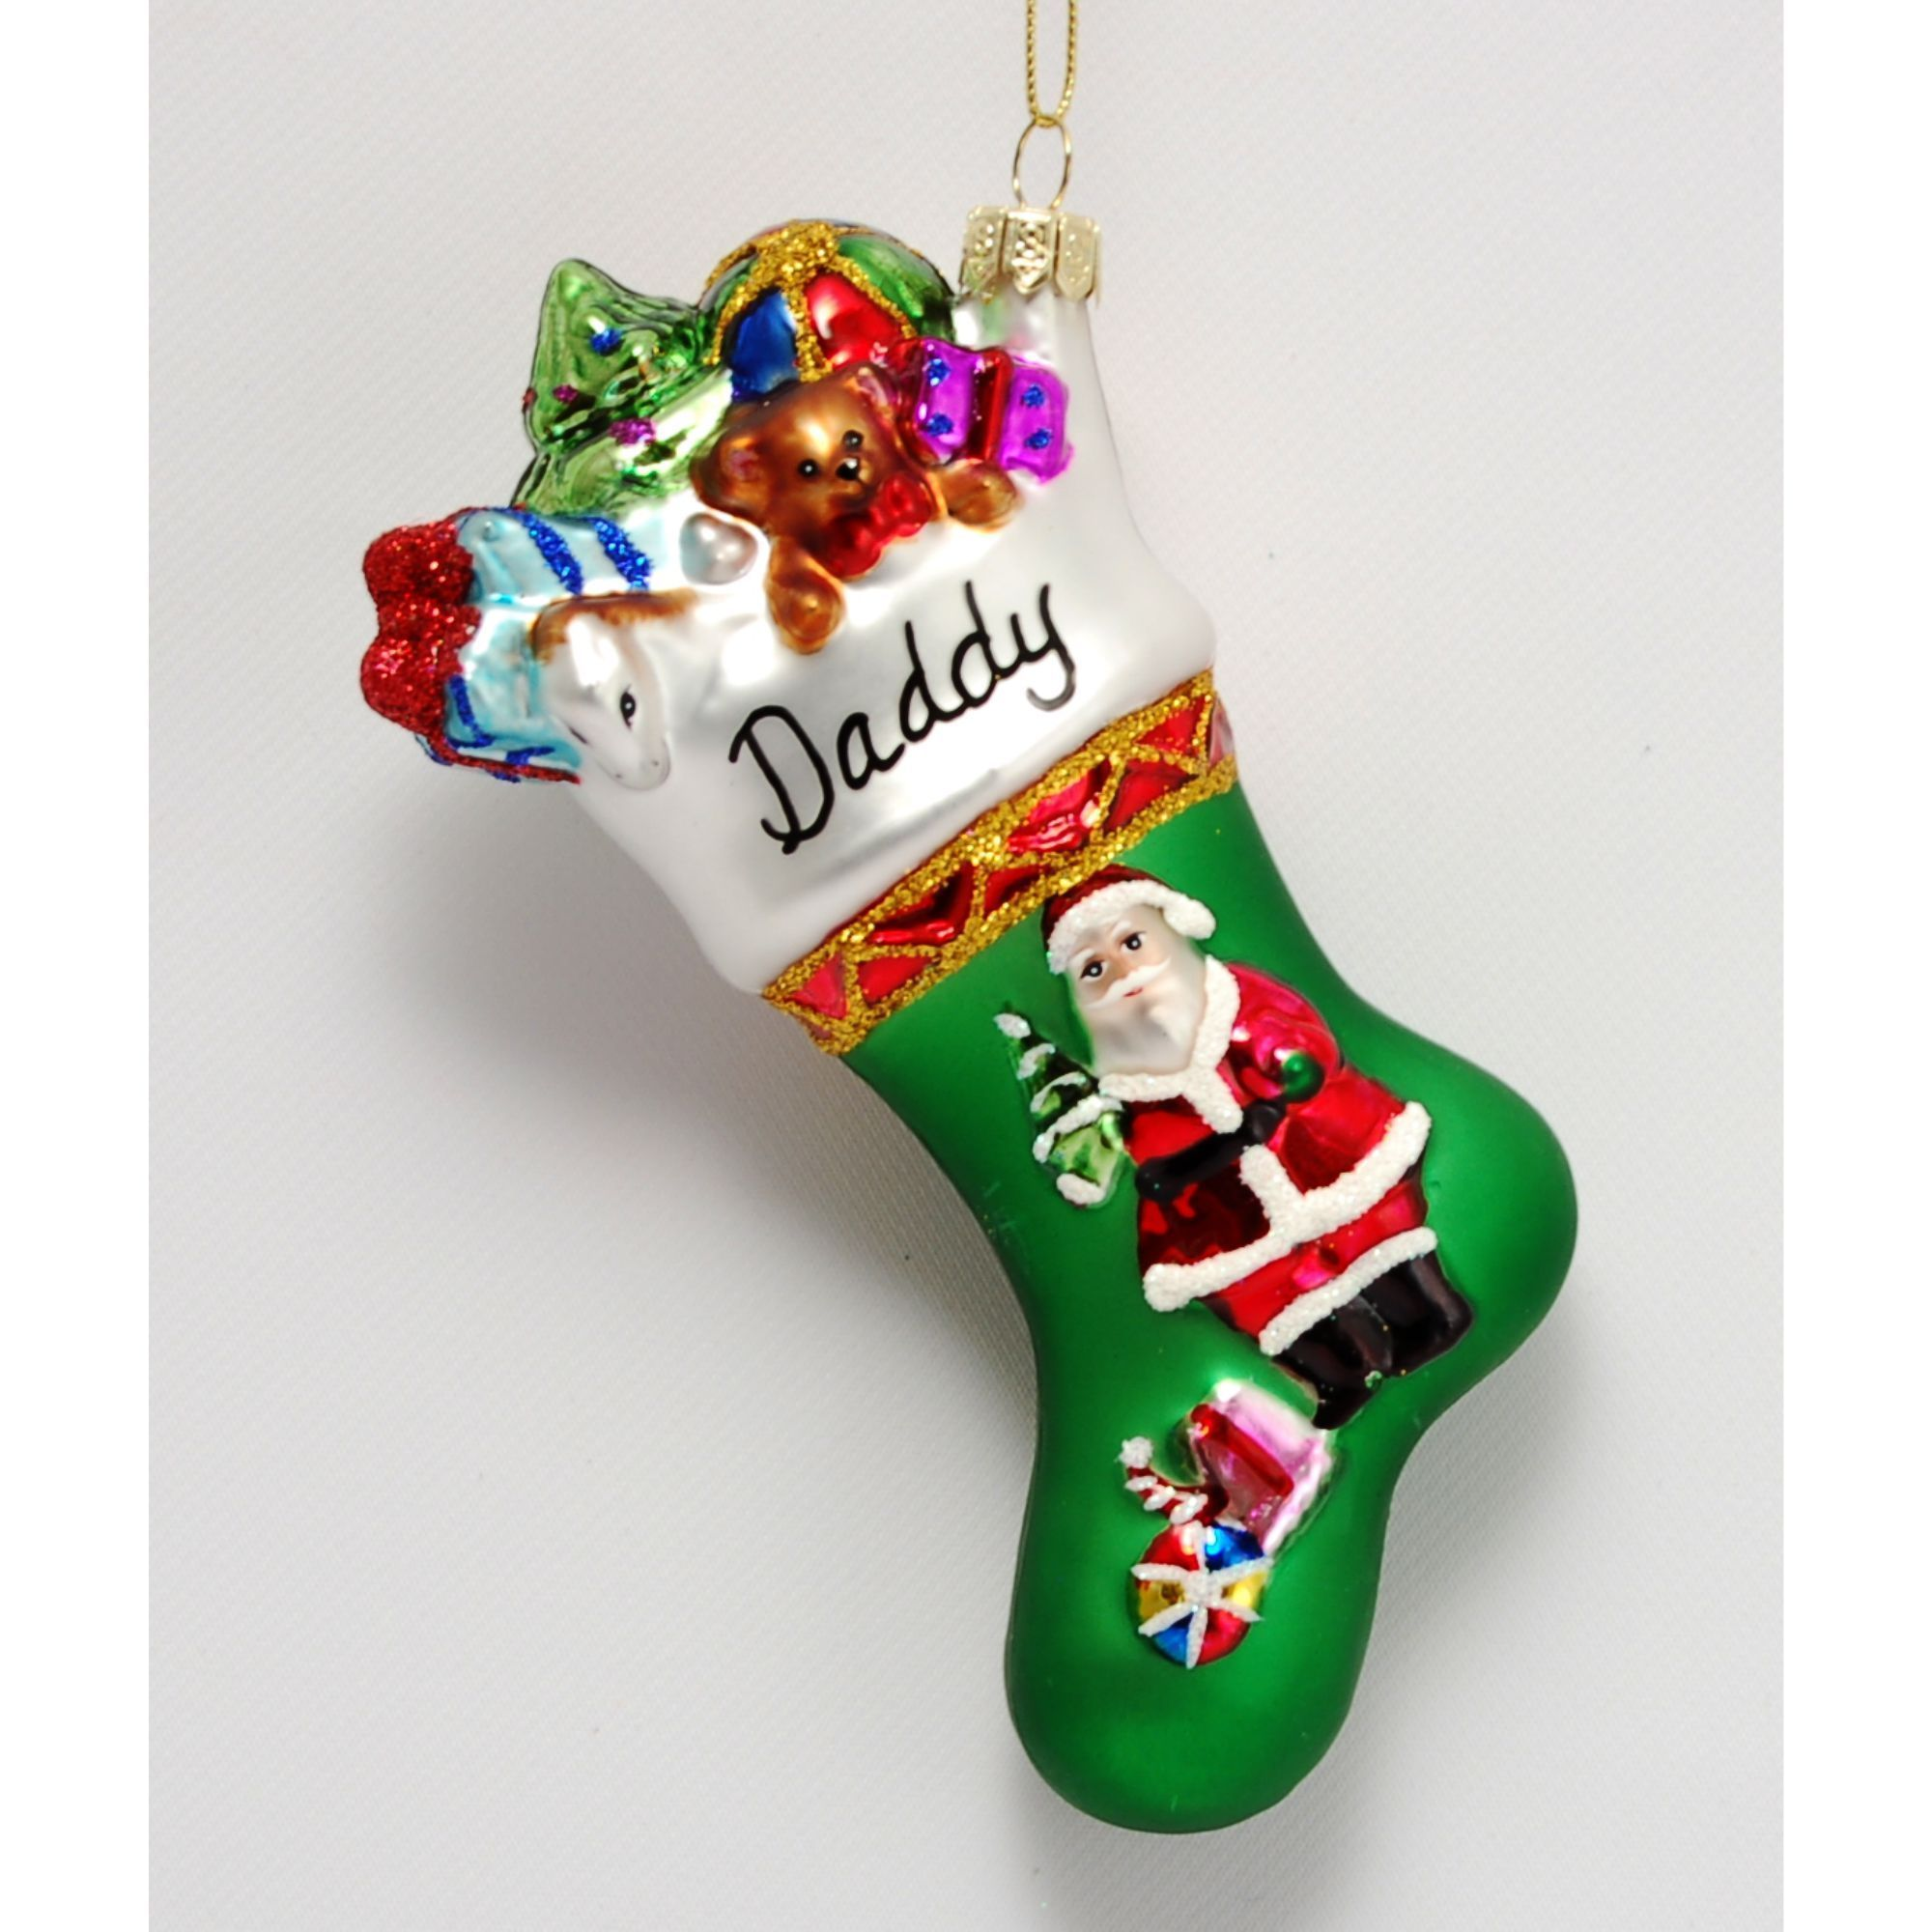 Family Collection Santa Claus Stocking Glass Christmas Ornament Personalized by Russell Rhodes